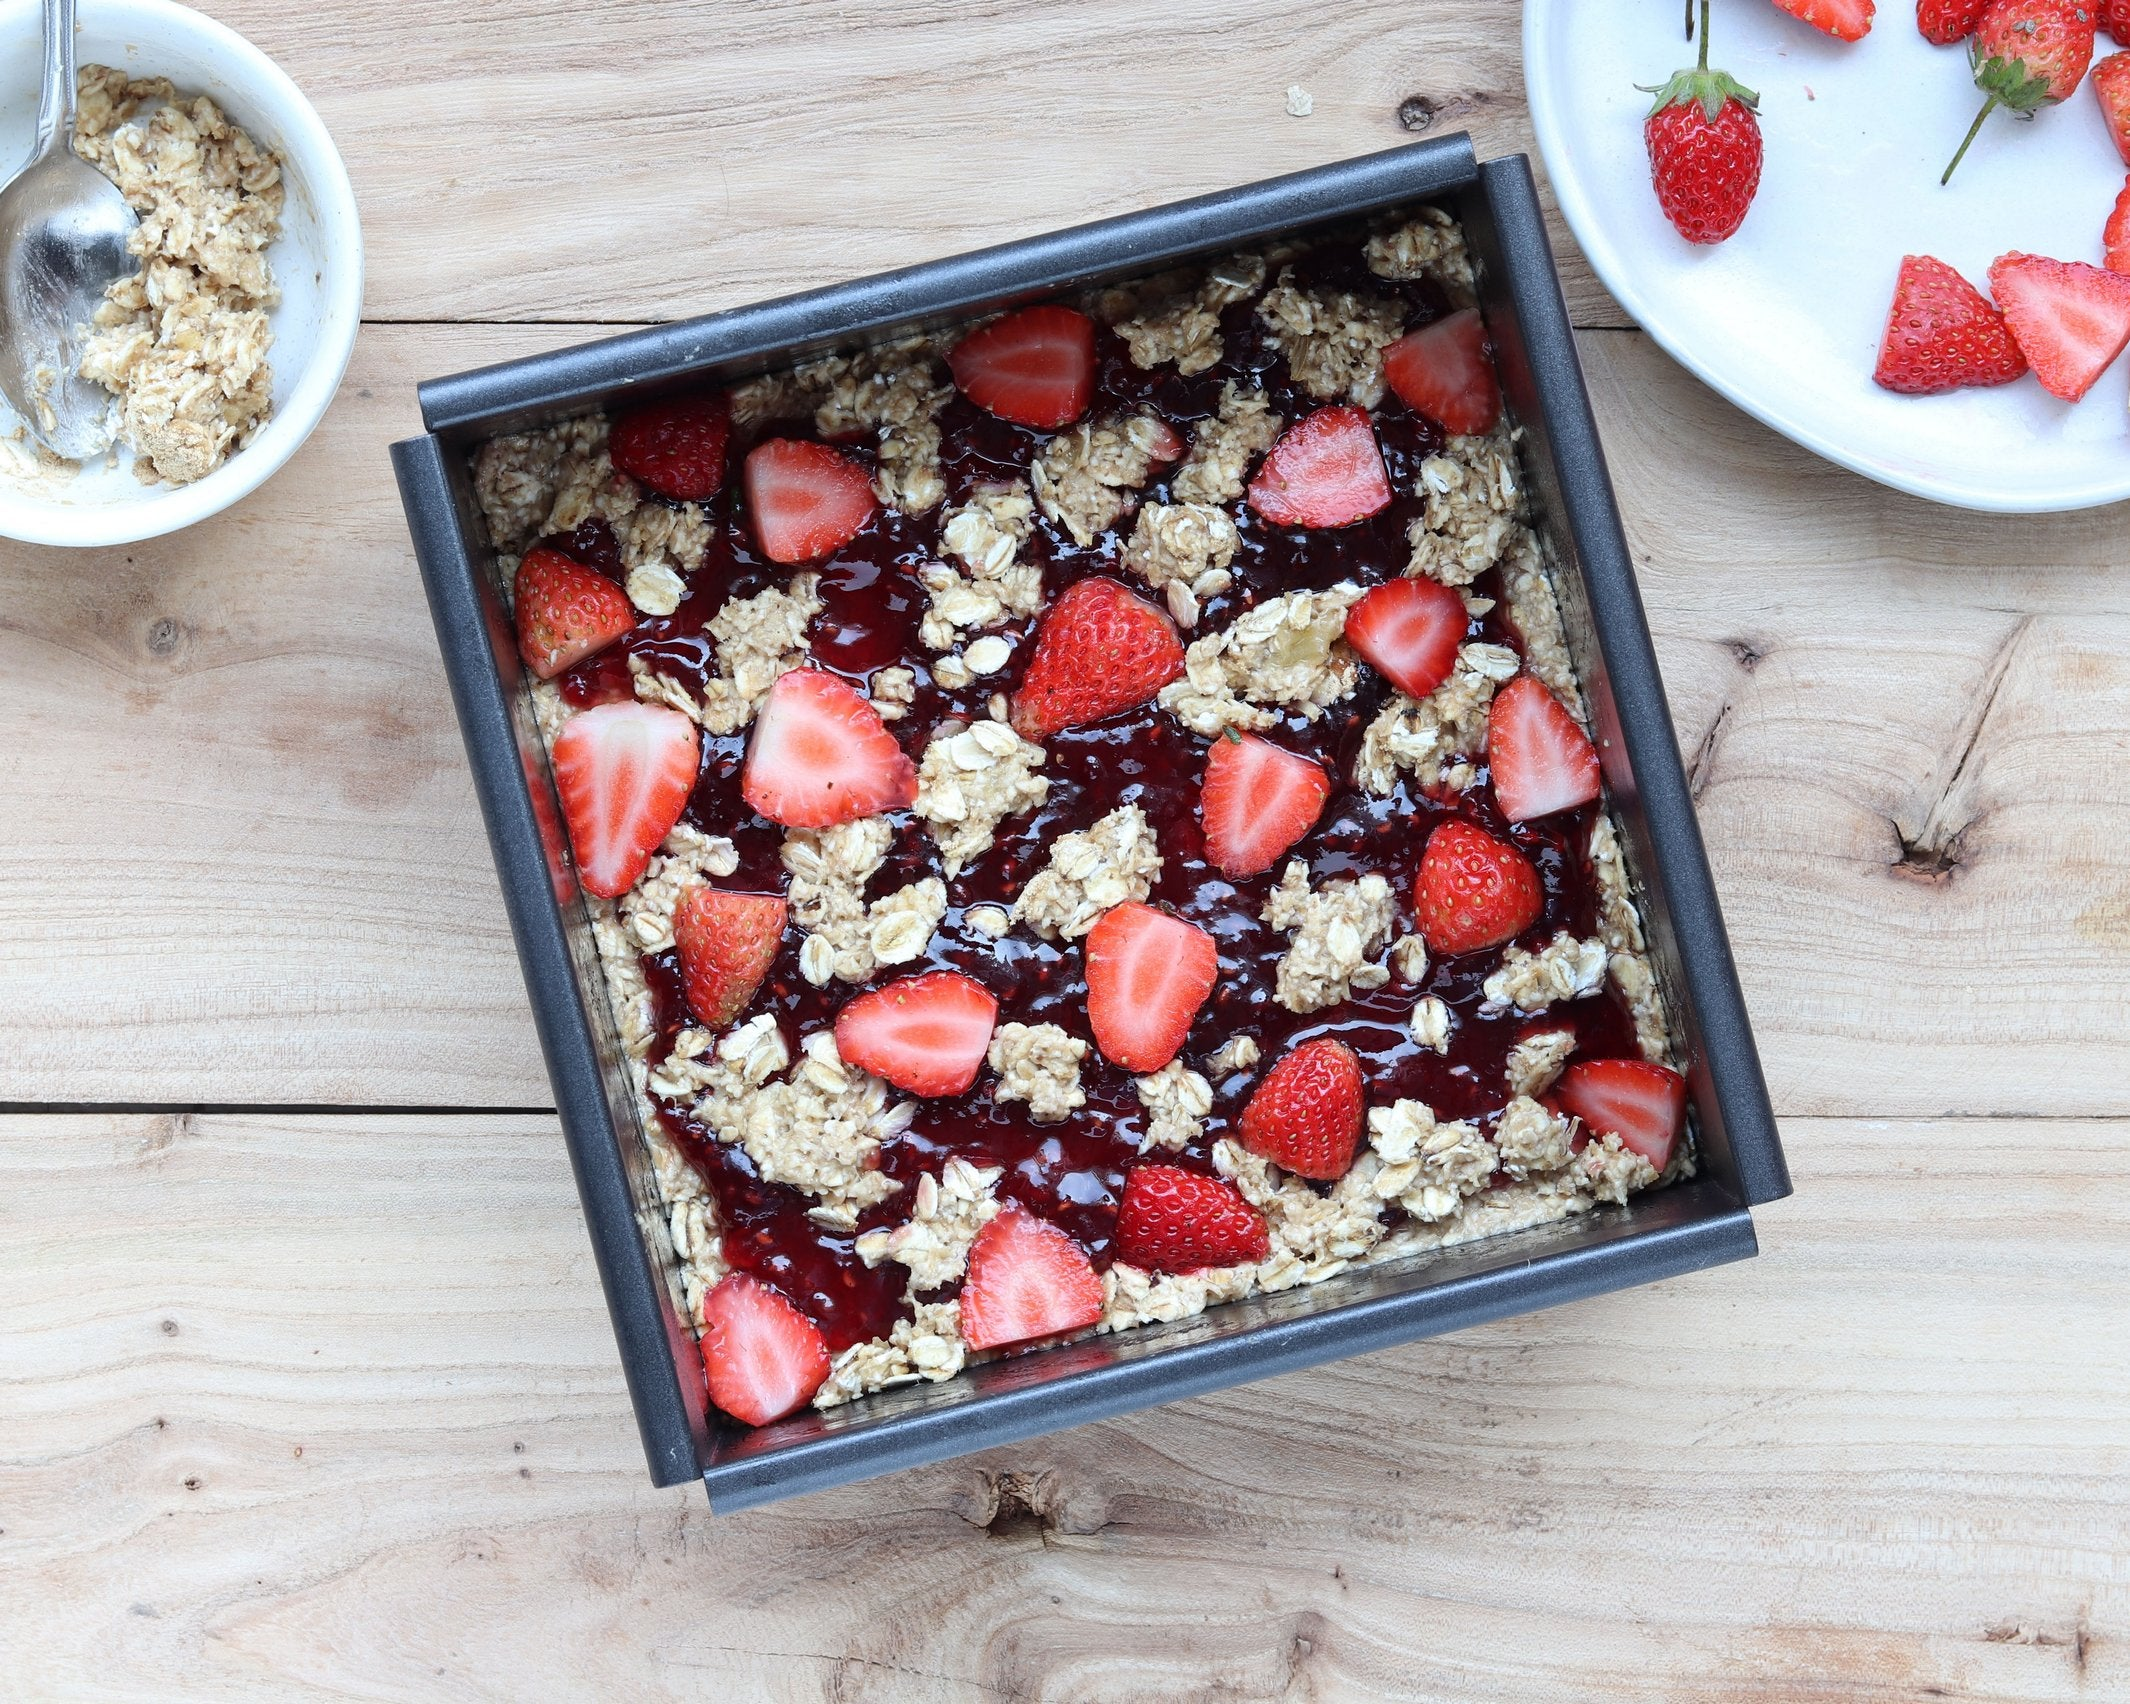 Maca Strawberry Oatmeal Bars with Bananas